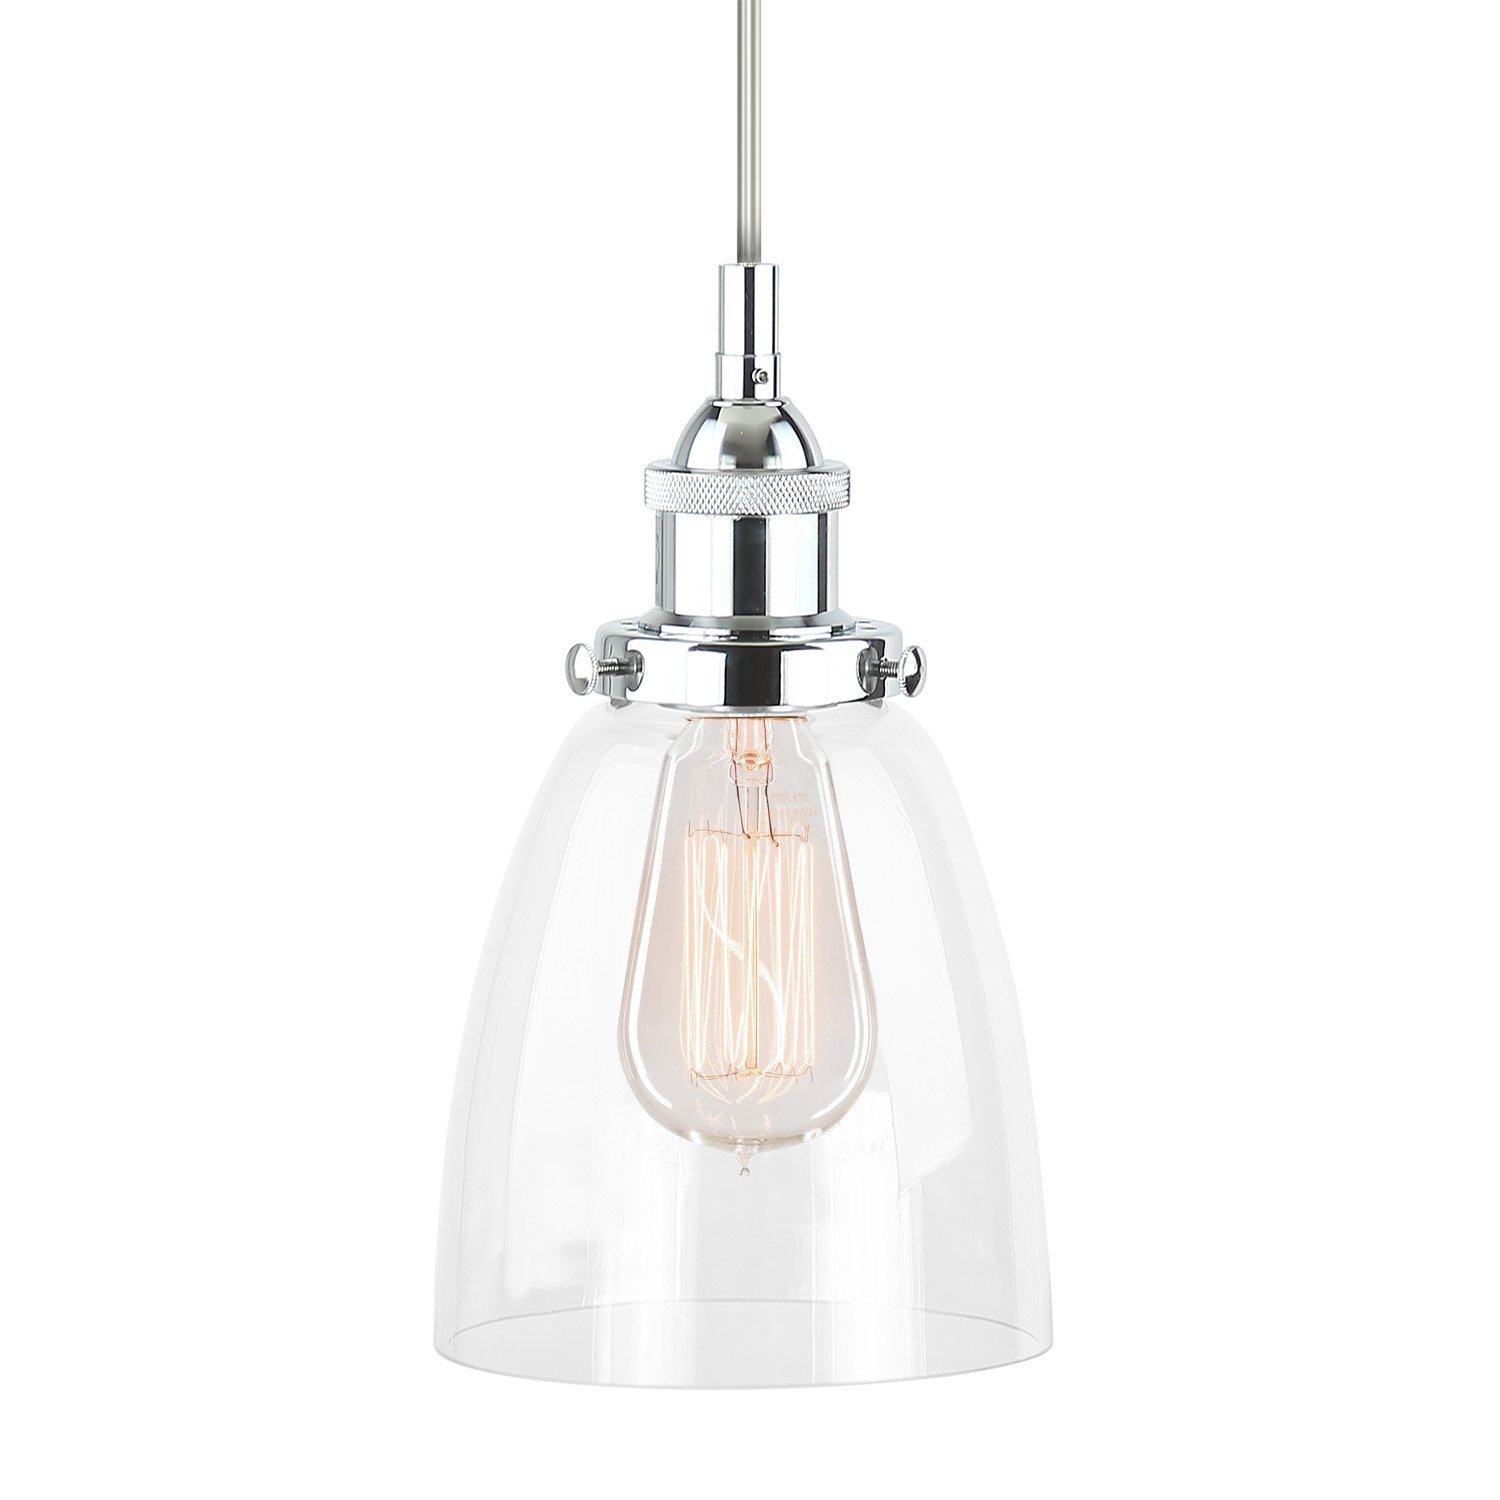 Fiorentino polished chrome one light industrial factory pendant fiorentino polished chrome one light industrial factory pendant lamp with clear glass shade linea di liara ll p281 pc amazon aloadofball Images